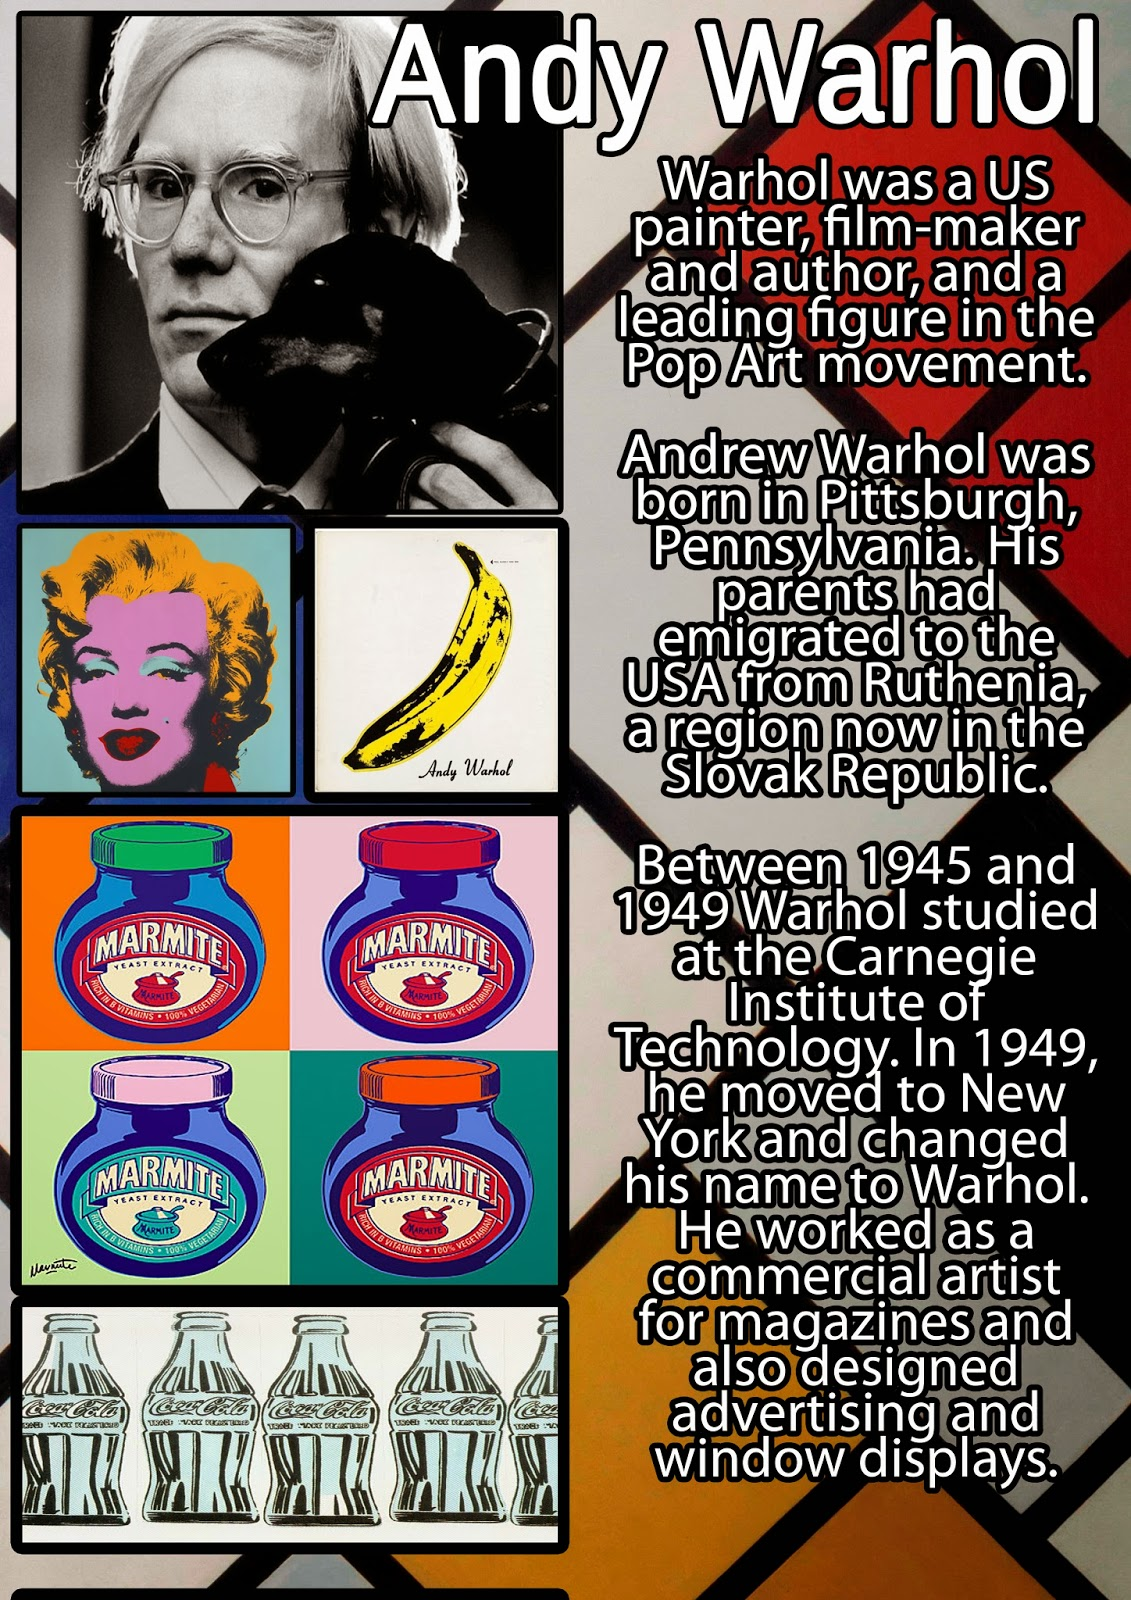 andy warhol research